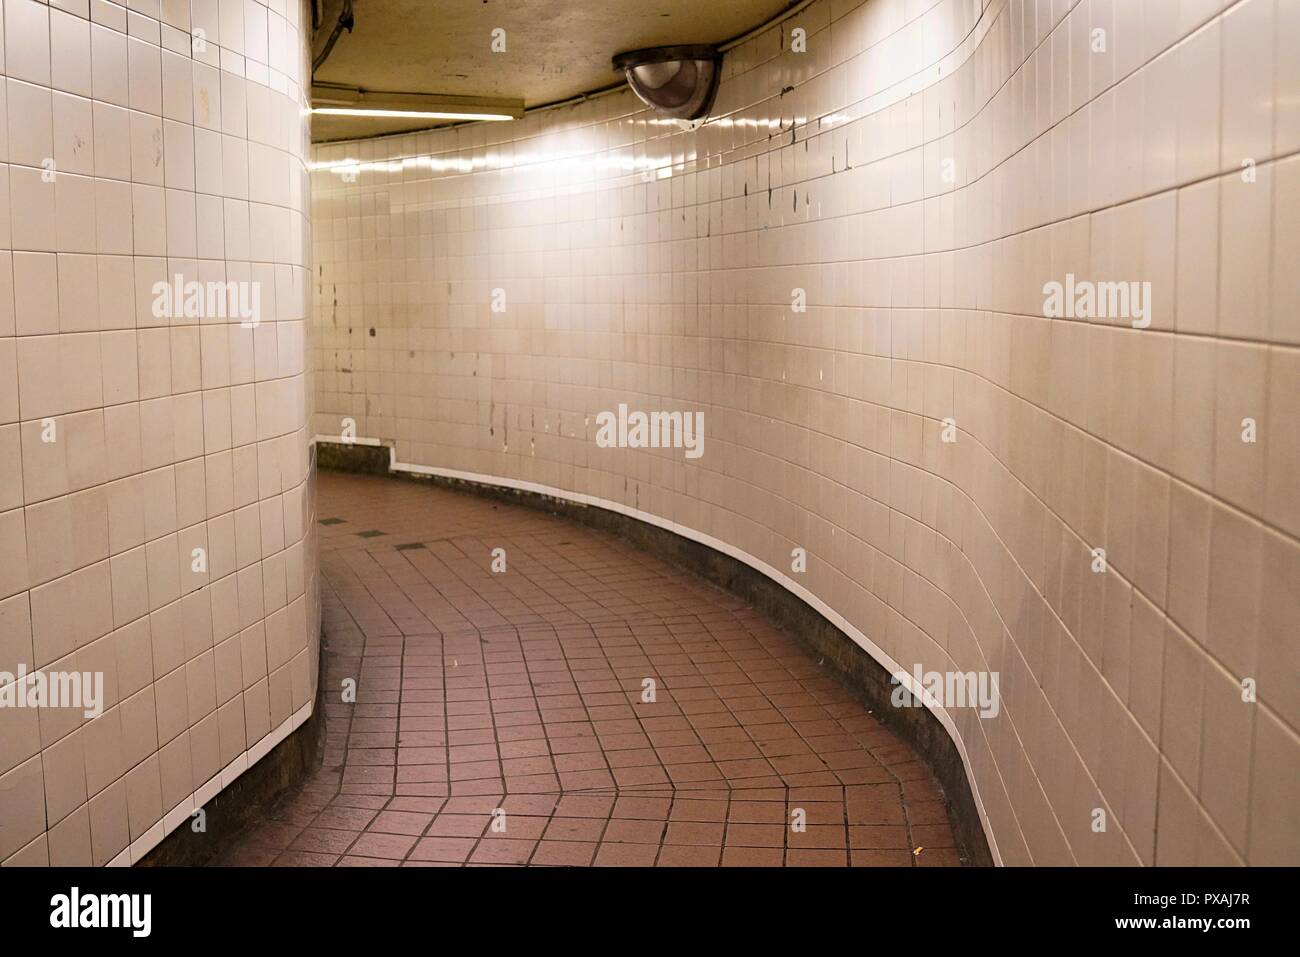 An Empty Hallway With White Subway Tiles On The Wall And Reddish - Tiles-for-the-hallway